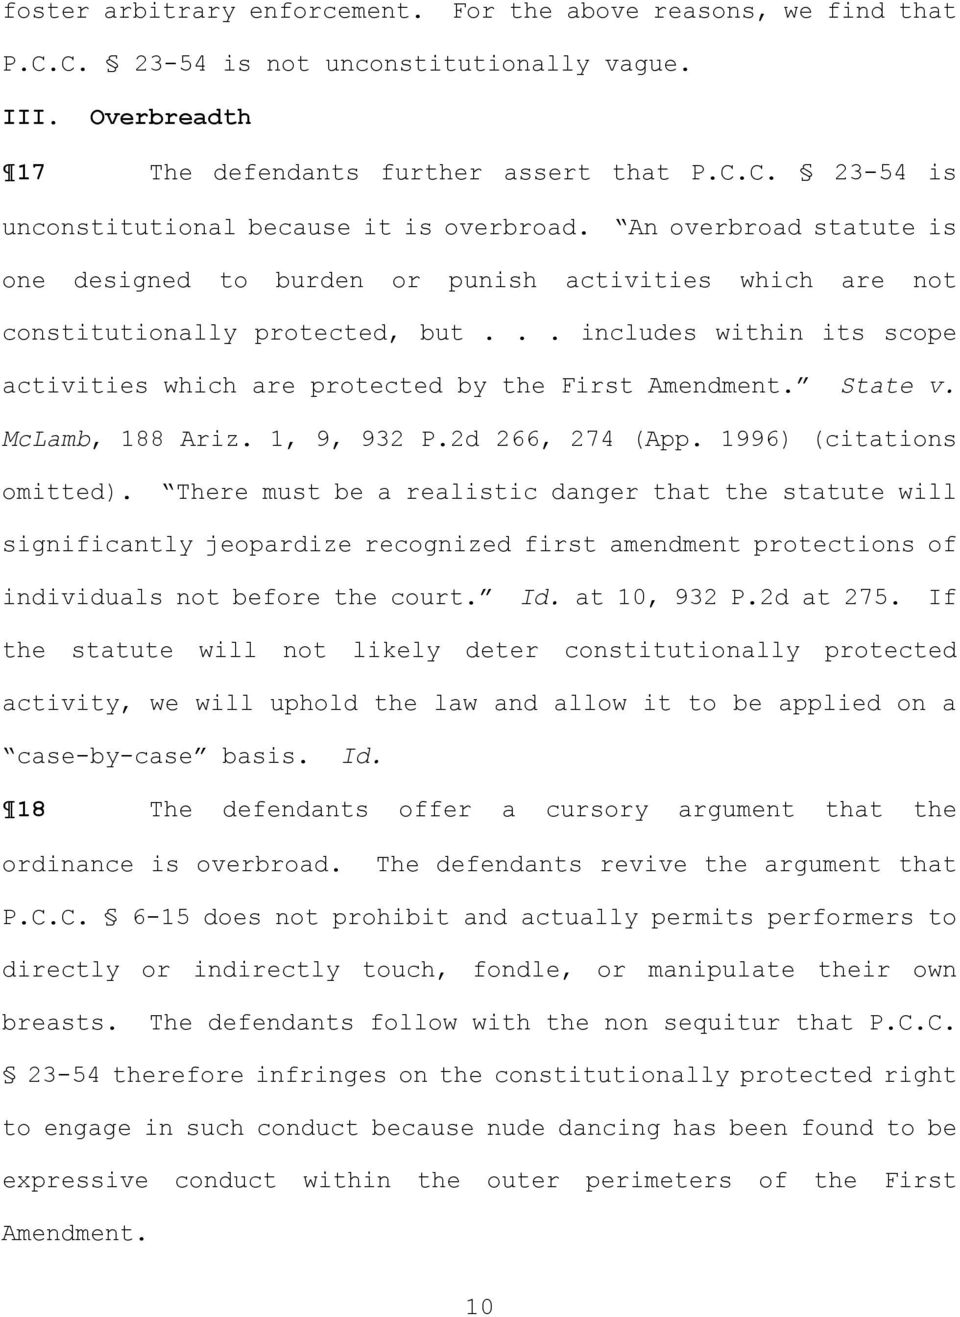 State v. McLamb, 188 Ariz. 1, 9, 932 P.2d 266, 274 (App. 1996 (citations omitted.